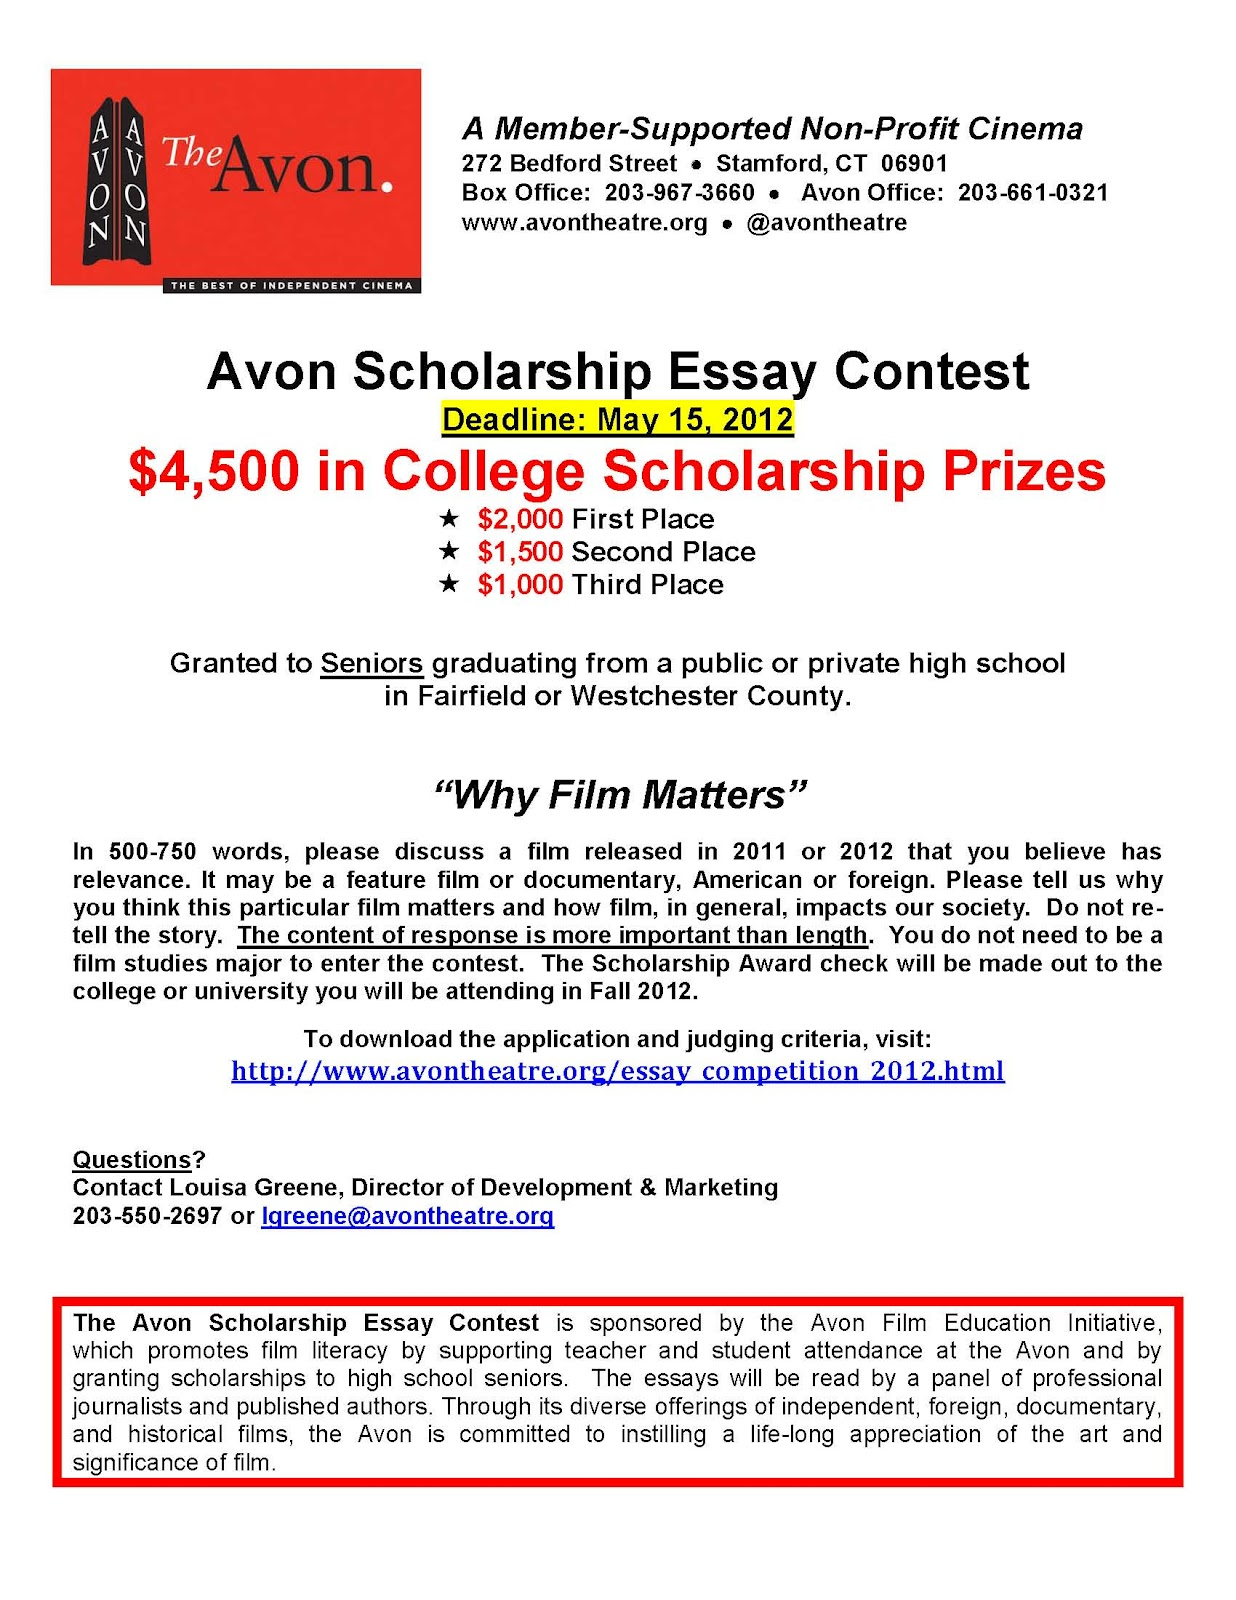 003 Non Essay Scholarships Example No College Scholarship Prowler Free For High School Seniors Avonscholarshipessaycontest2012 In Texas California Class Of Short Imposing Undergraduates Full